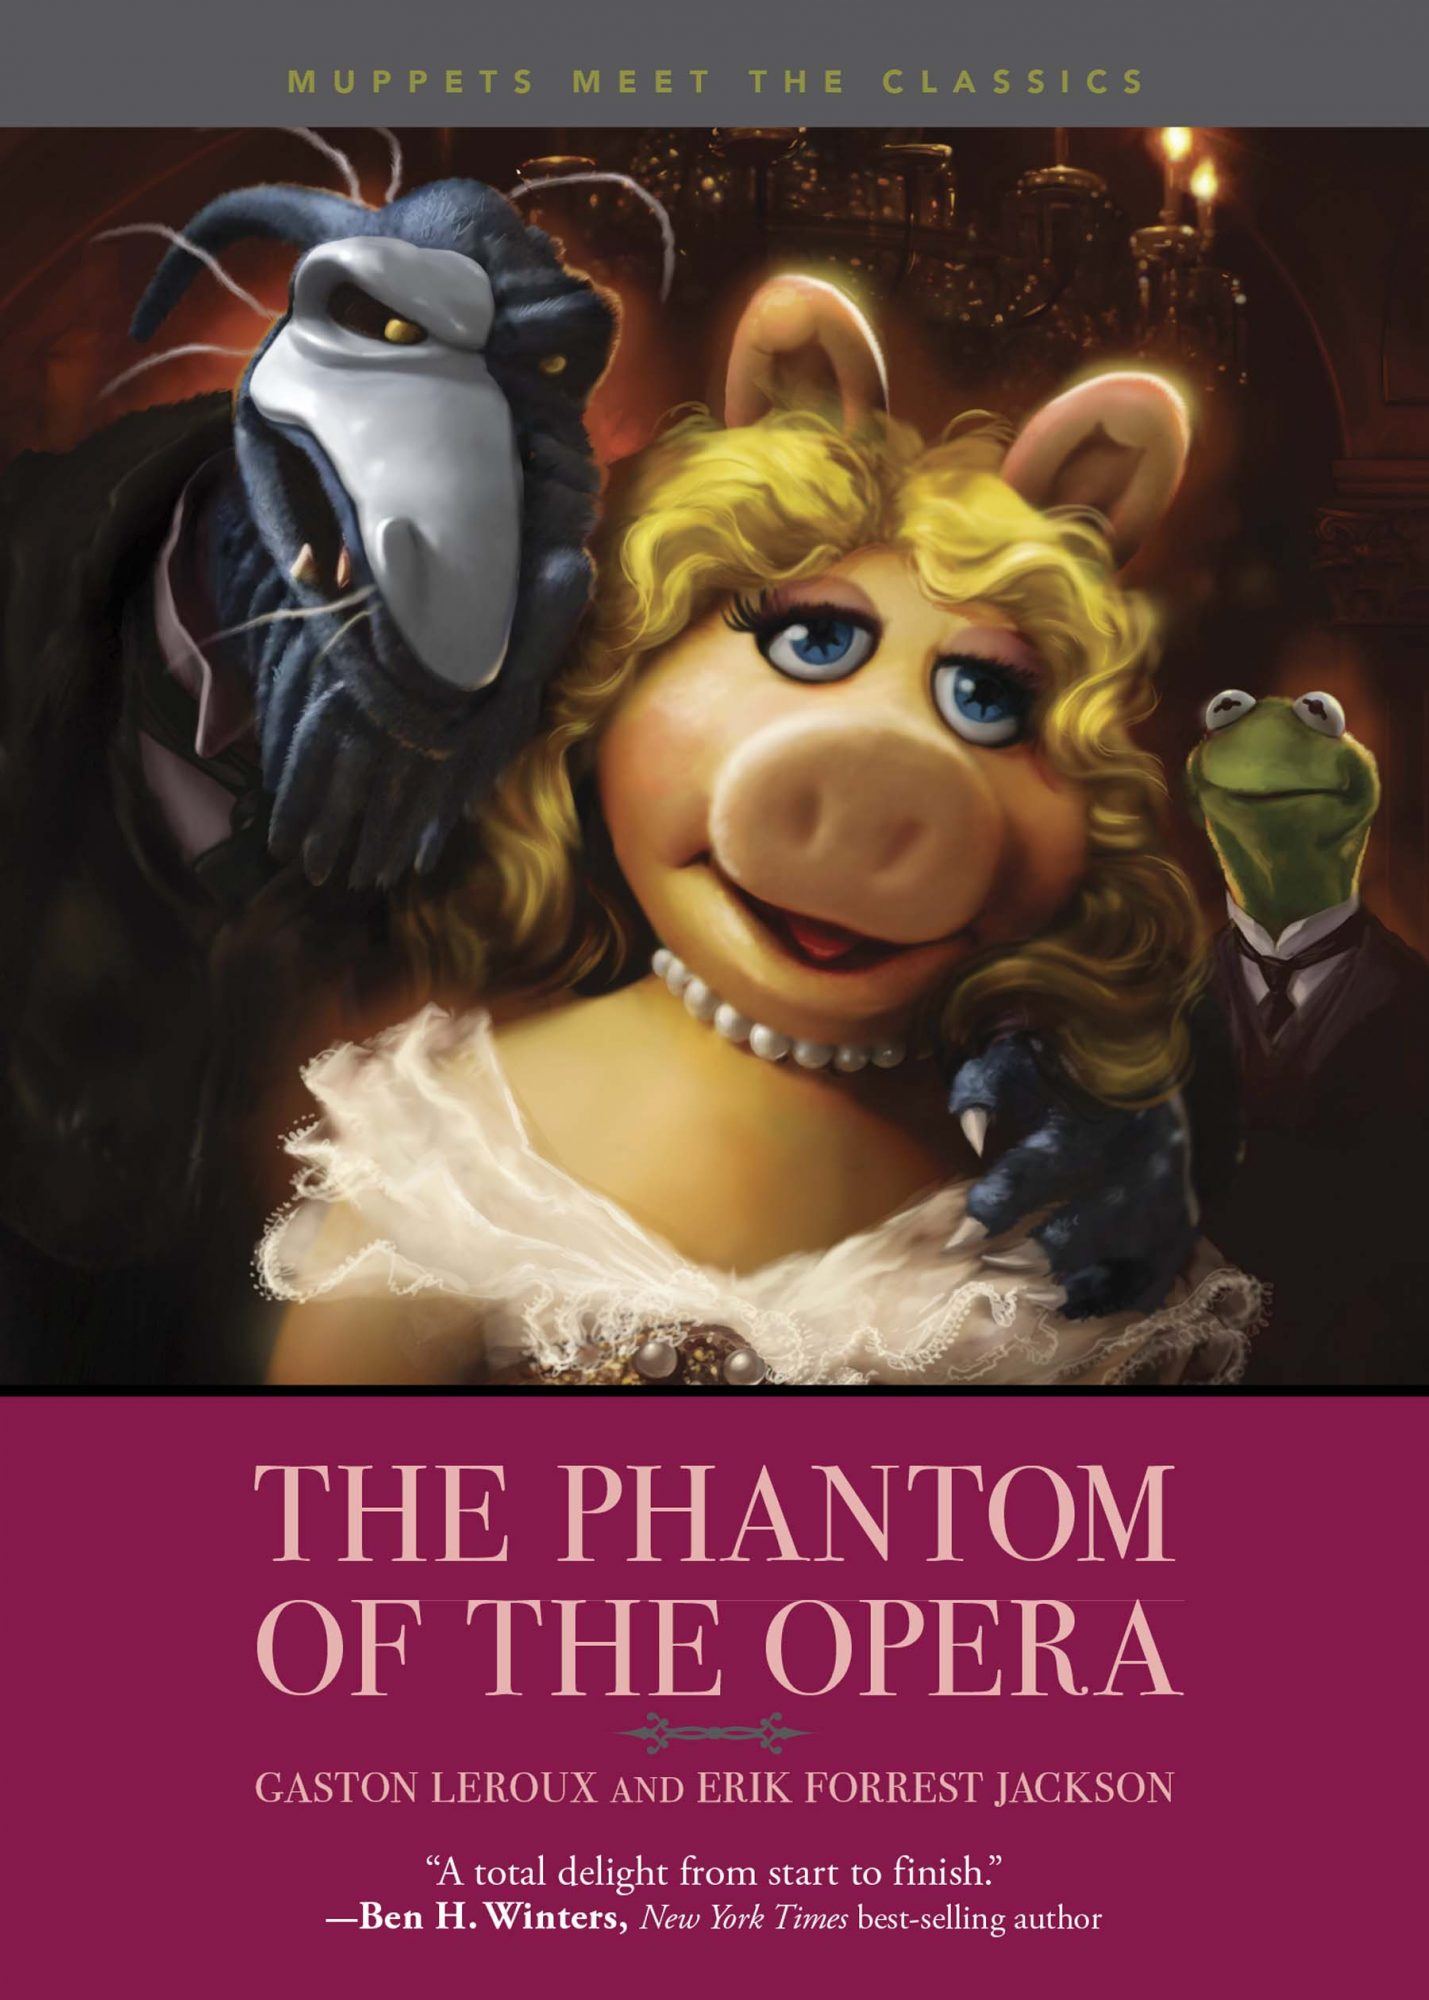 Muppet Meet the Classics: The Phantom of the Opera by Gaston Leroux and Erik Forrest Jackson